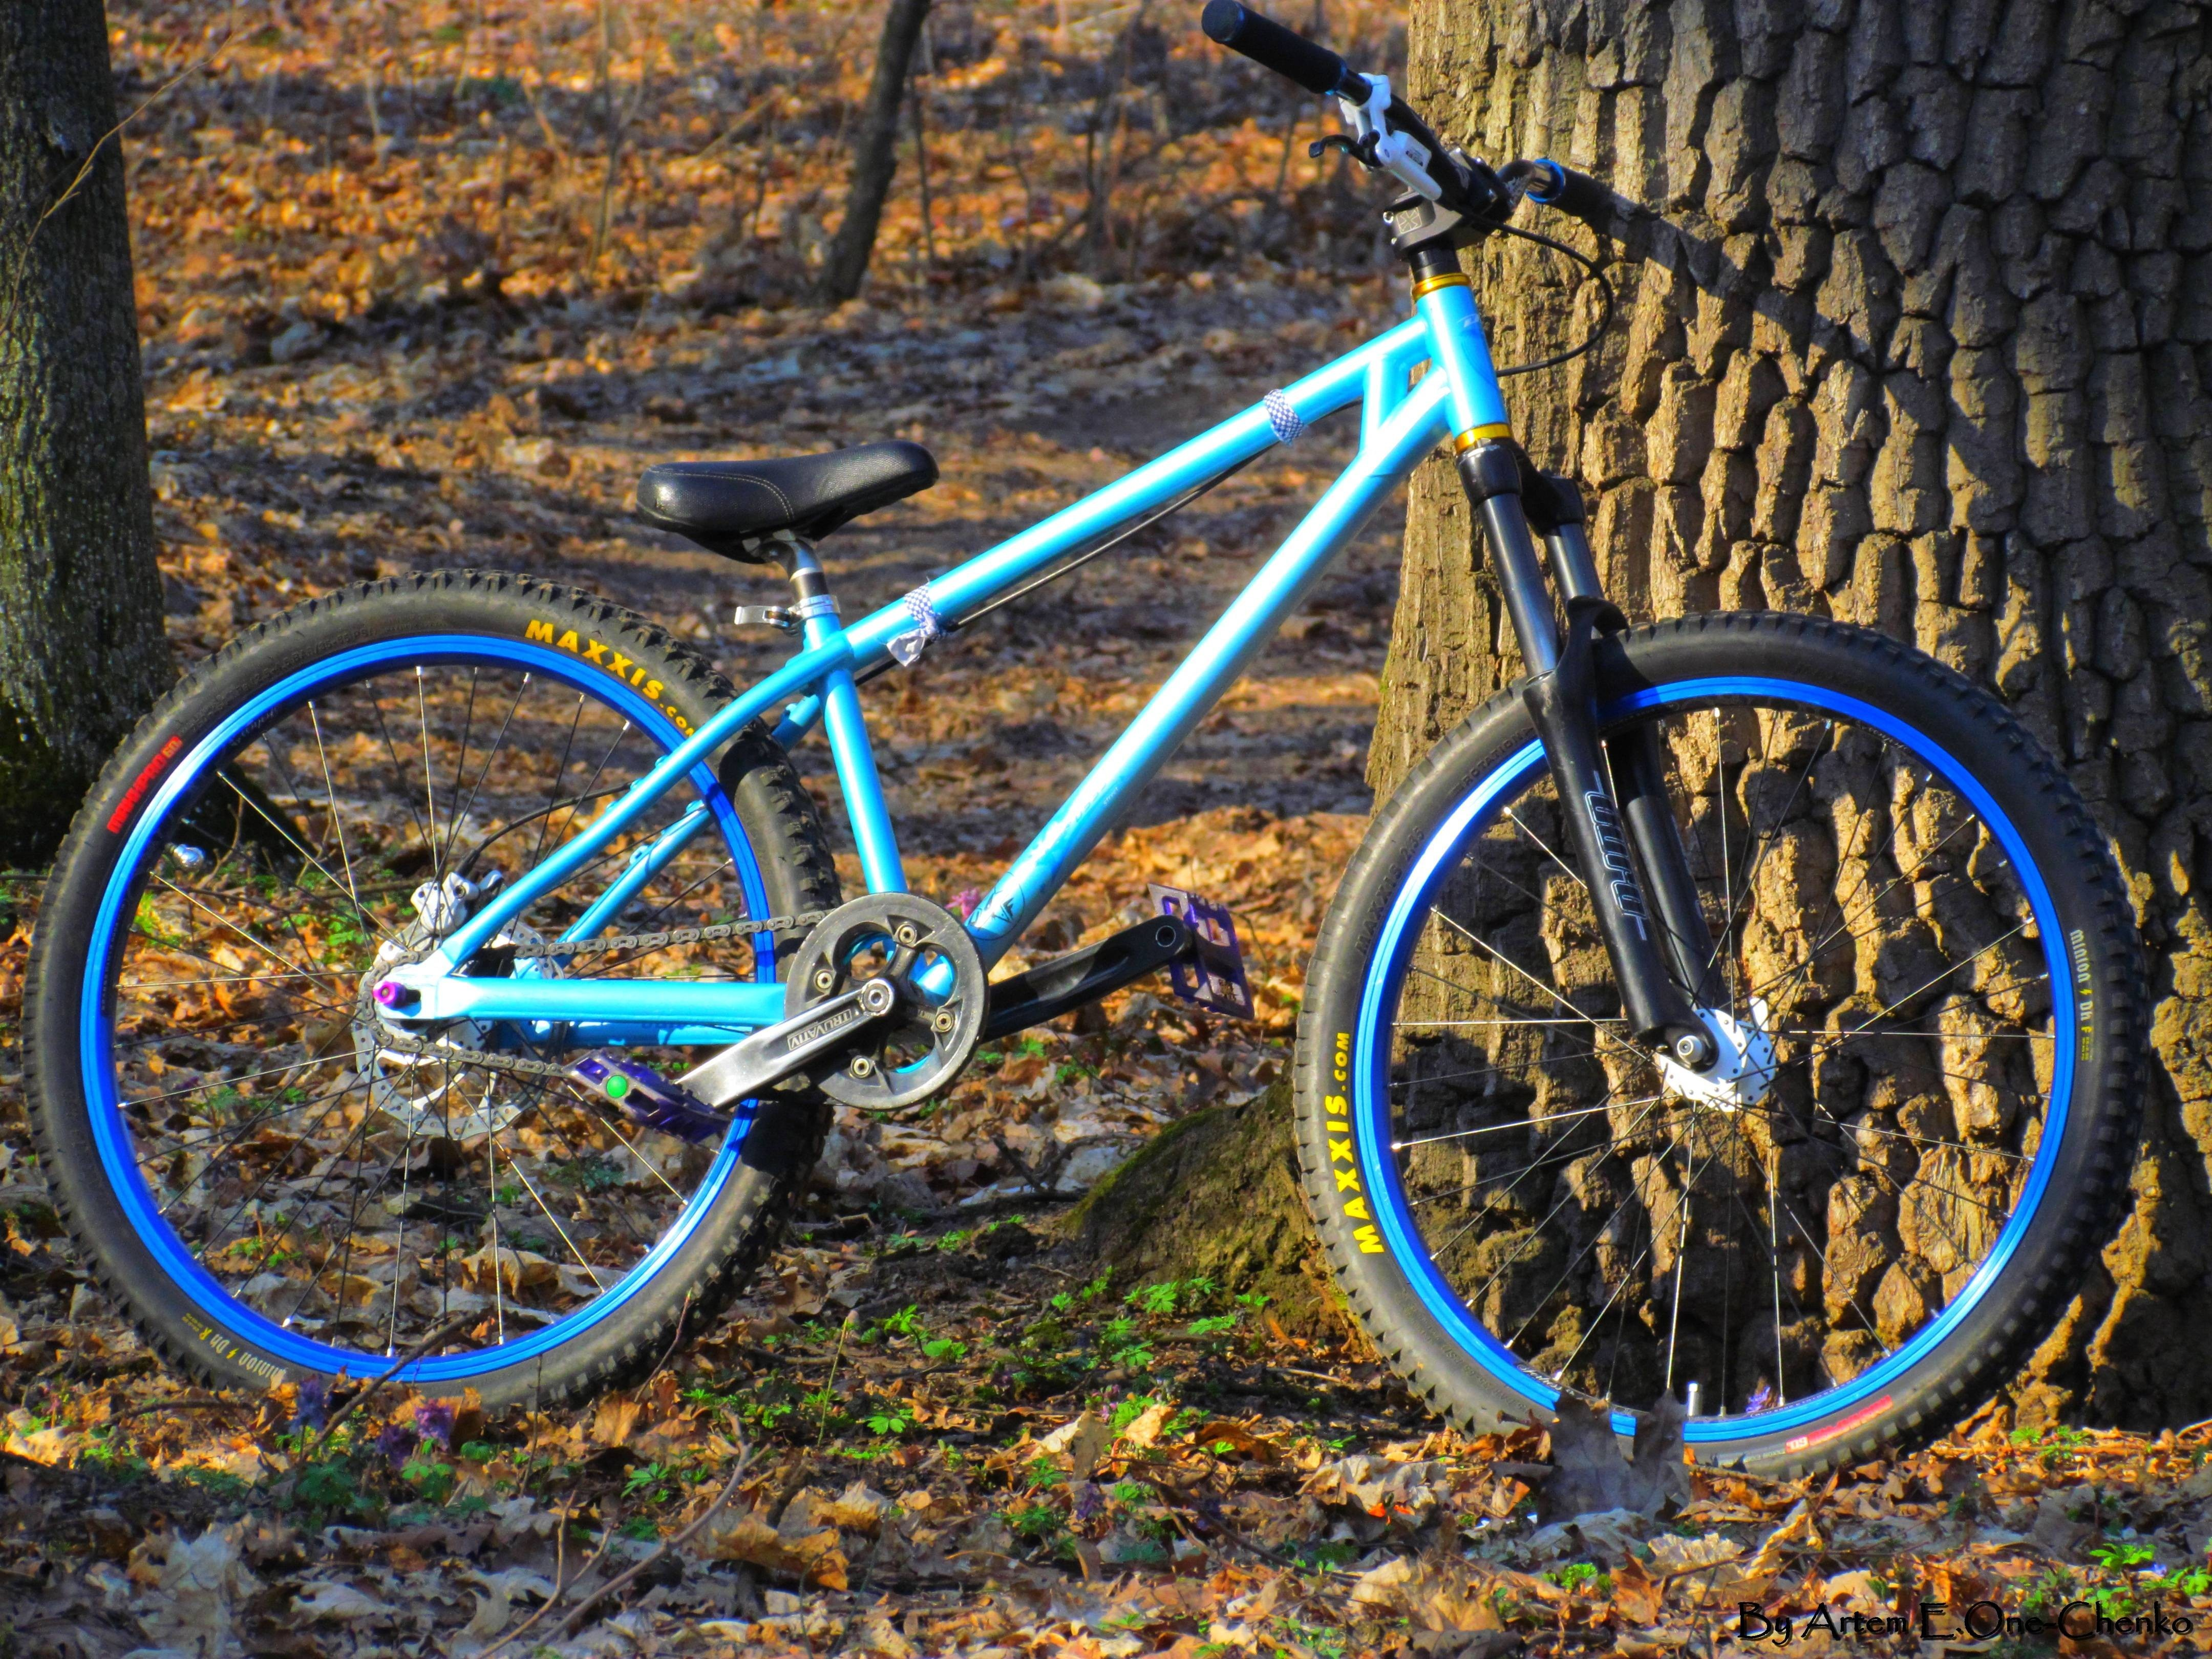 Ukraine vehicles mountain bikes HD Wallpaper